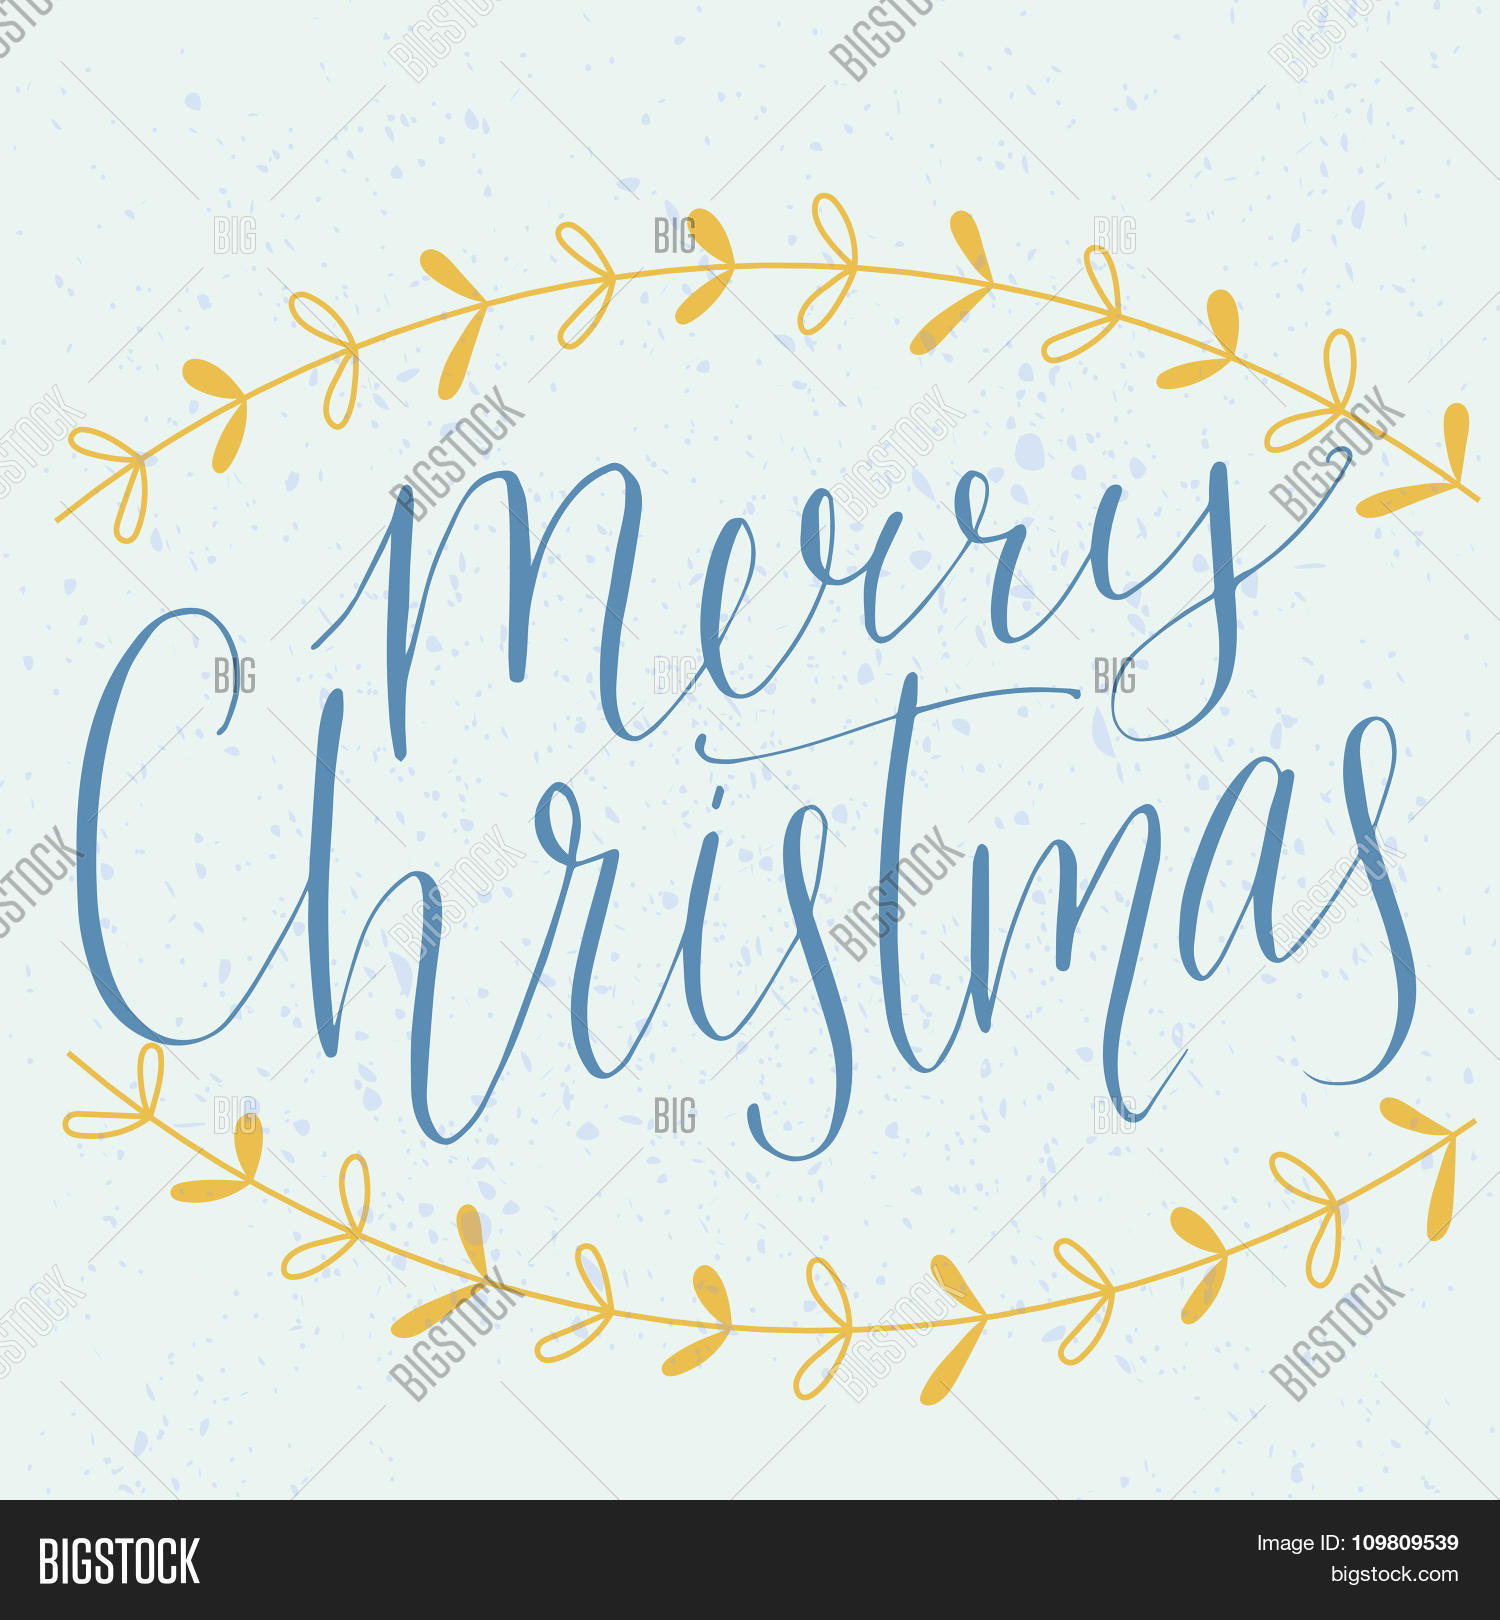 Merry Christmas Type Modern Calligraphy Made With Dip Pen Vector Lettering Hand Drawn